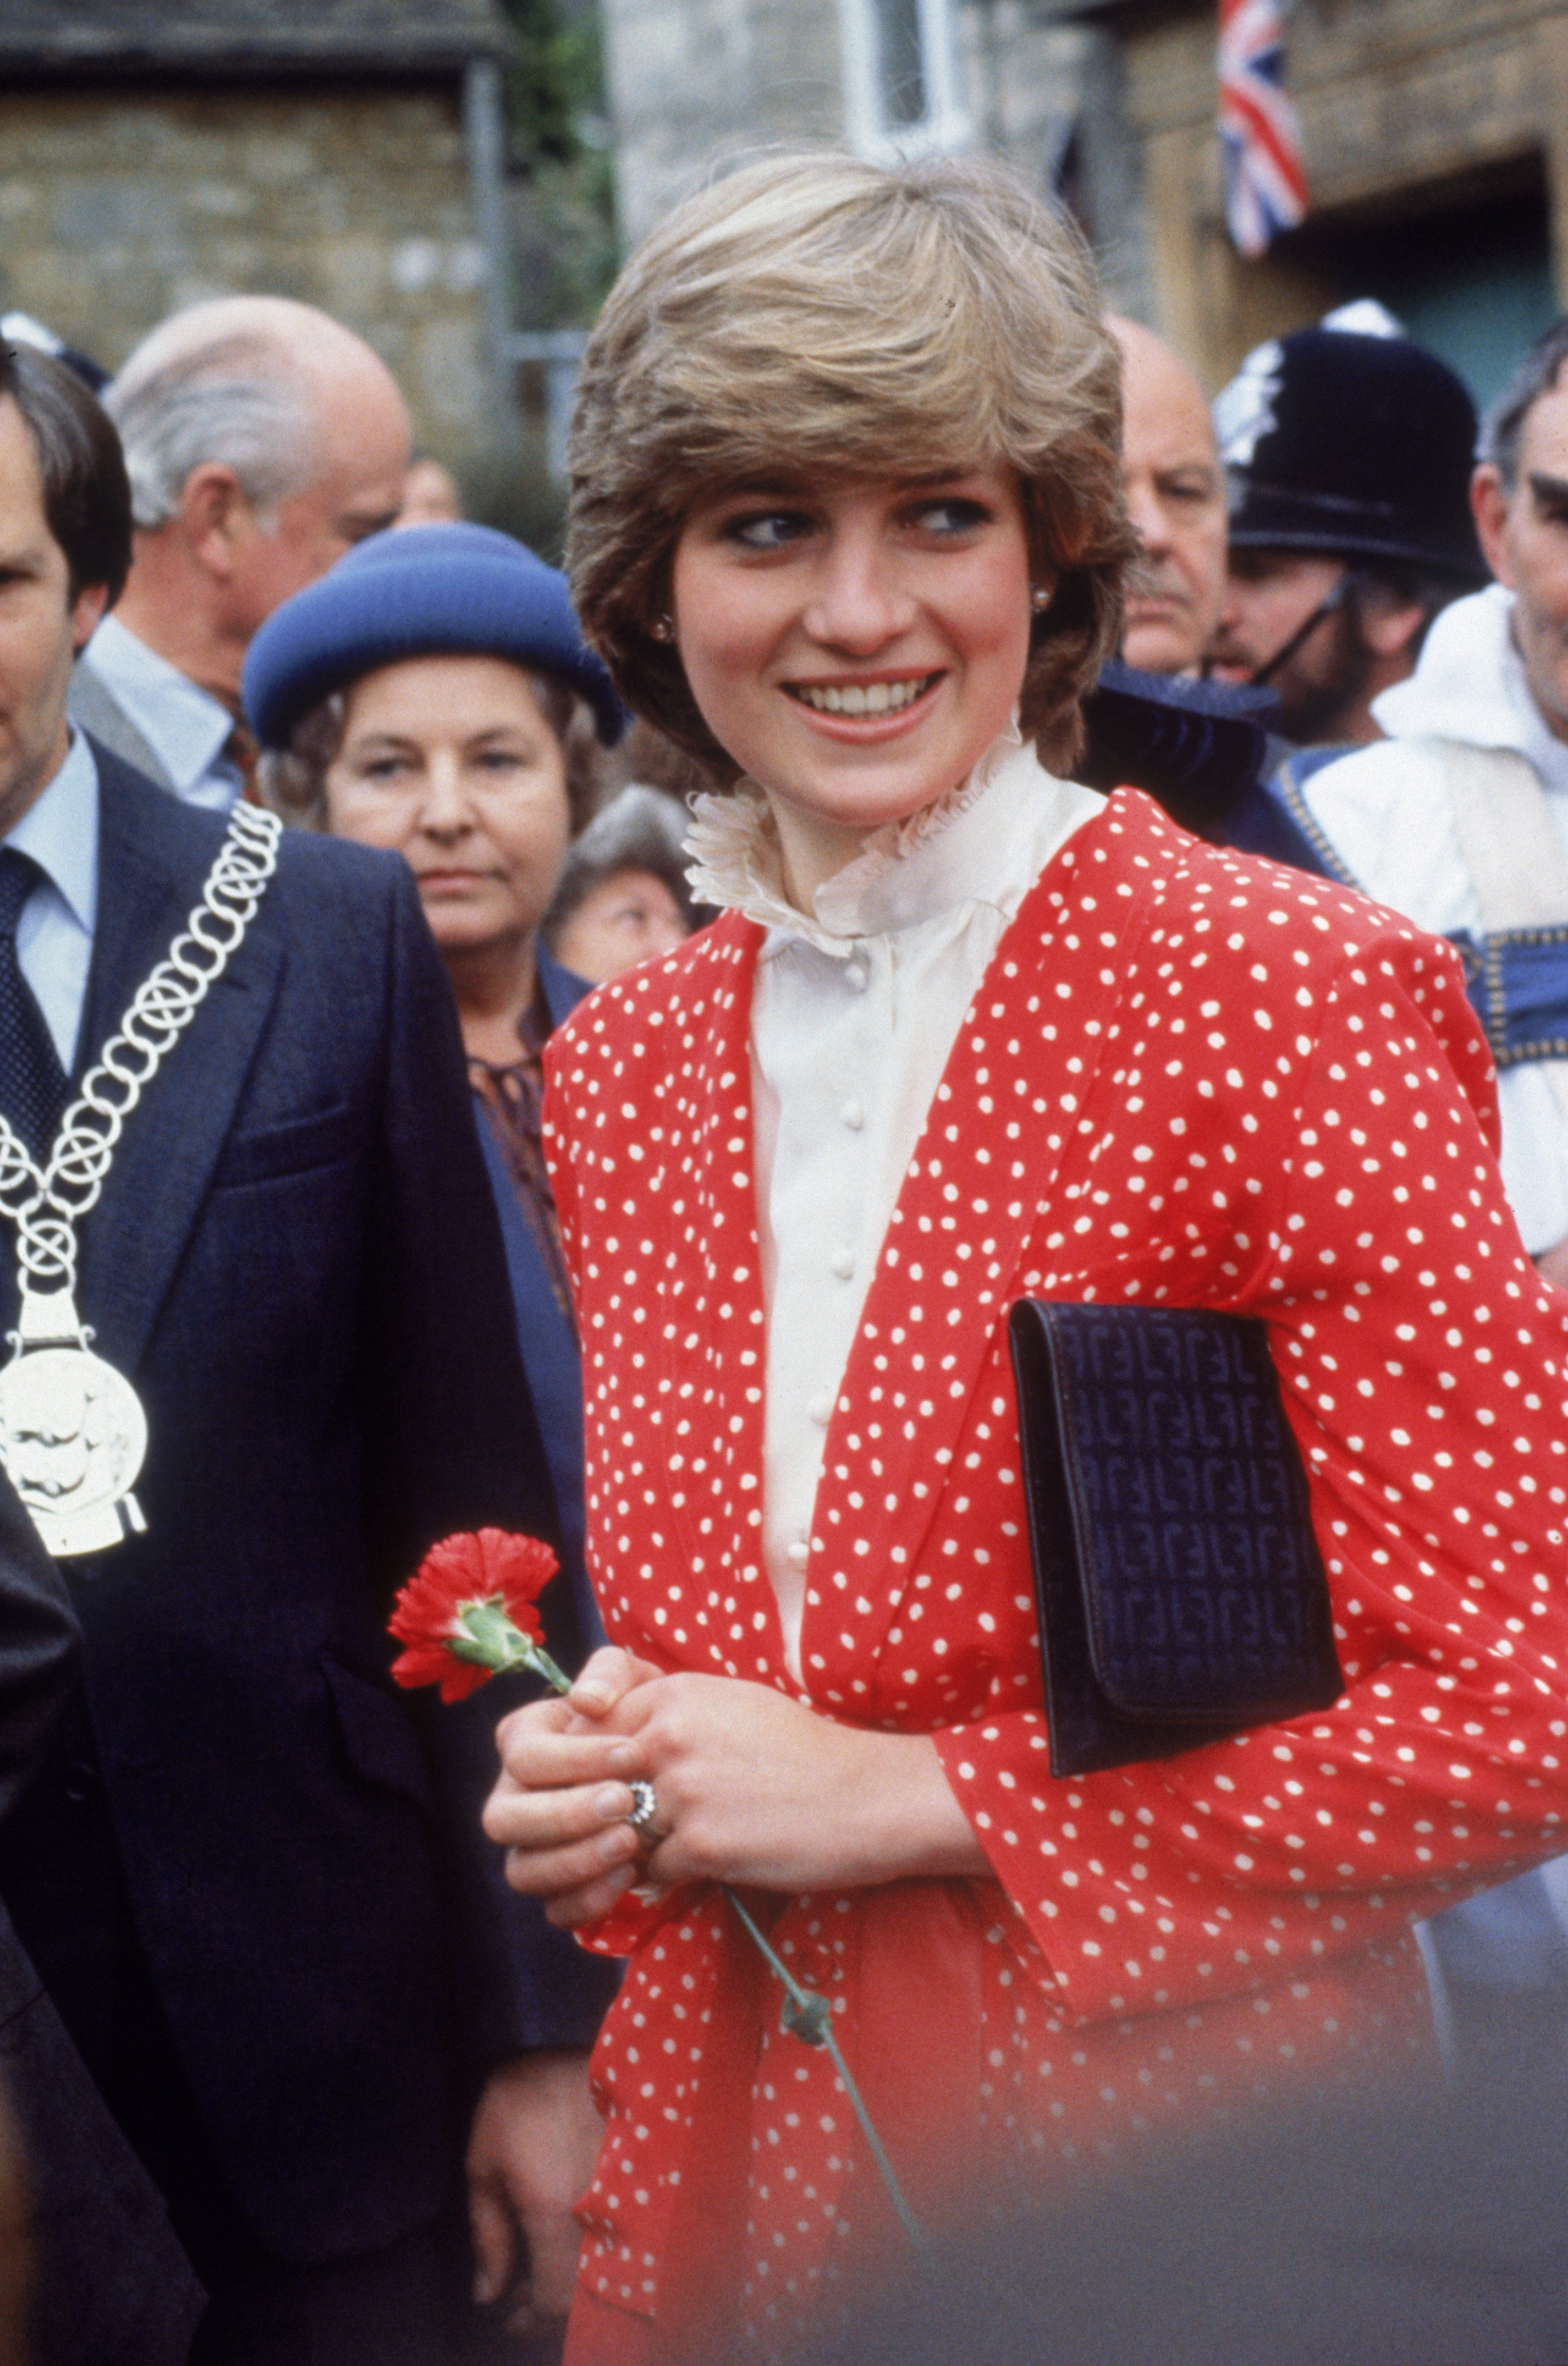 Lady Diana Spencer (1961 - 1997) visits the town of Tetbury in Gloucestershire shortly after her engagement to Prince Charles, 22nd May 1981. She is wearing a Jasper Conran suit. (Photo by Jayne Fincher/Princess Diana Archive/Getty Images)